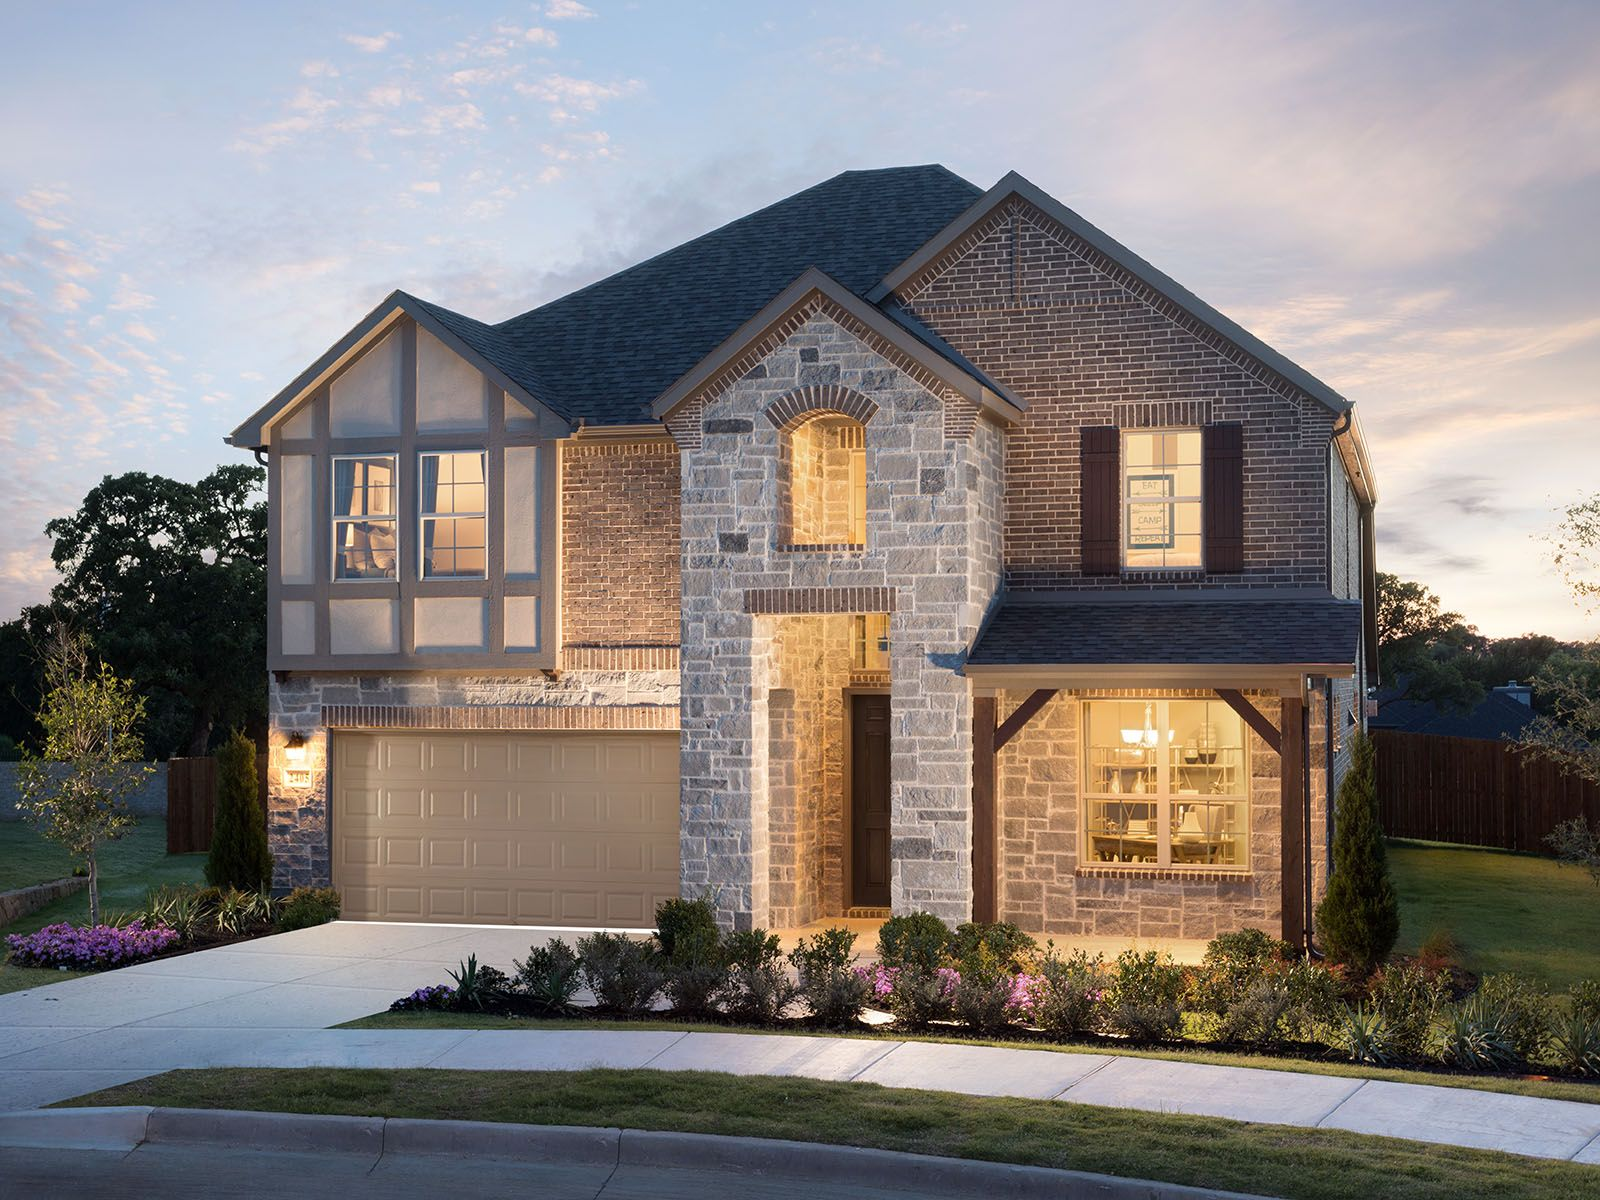 Terrace Oaks - Reserve Series new homes in Corinth TX by